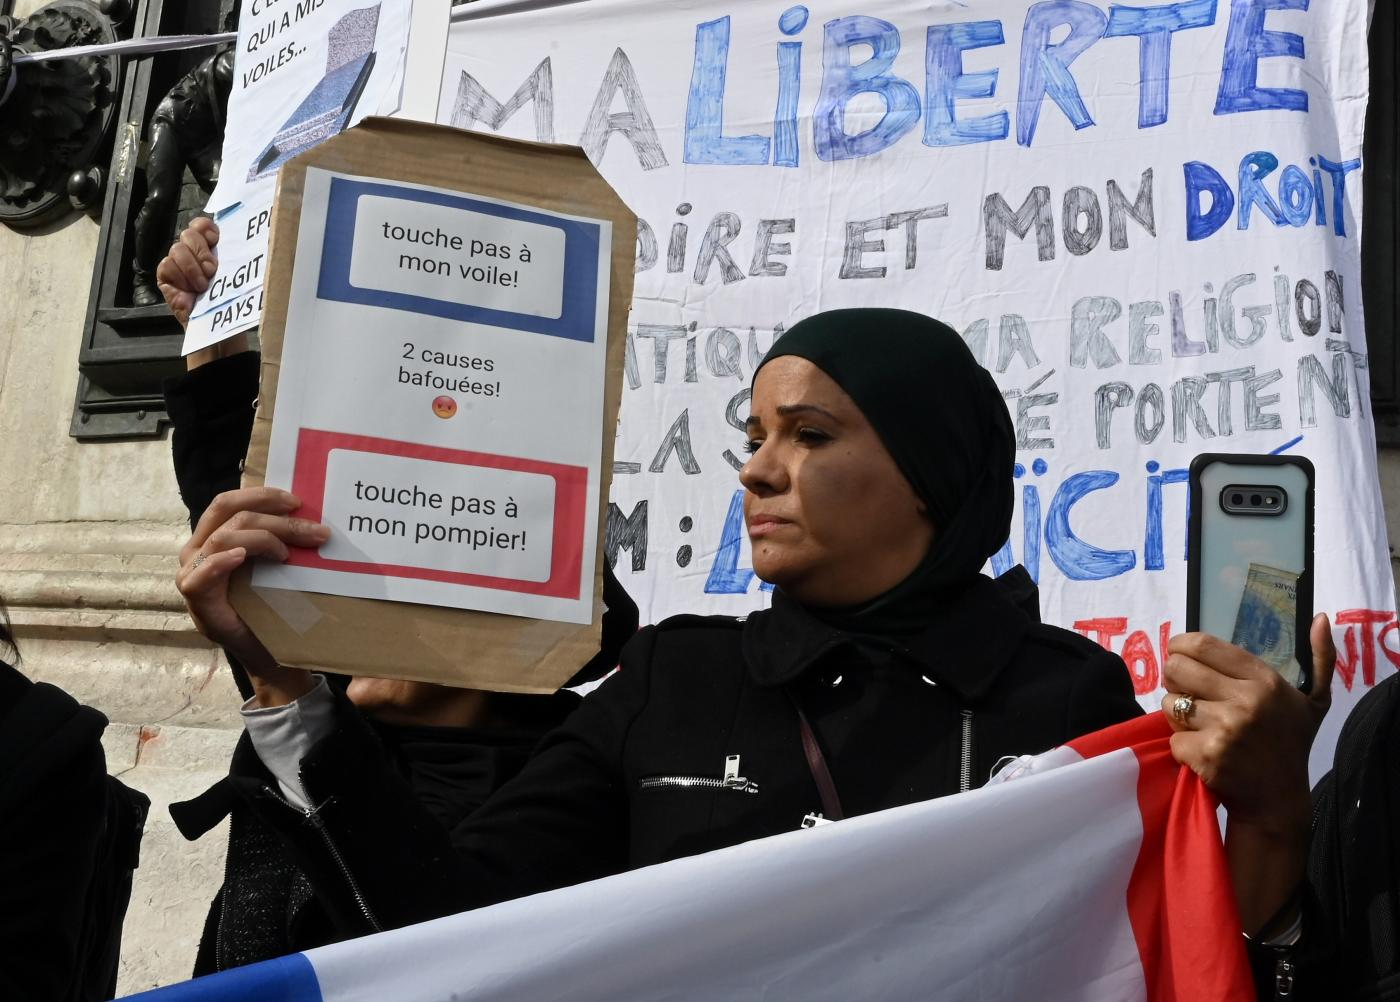 French Fear and Loathing towards Muslim Women Reveal a Deeper Malaise